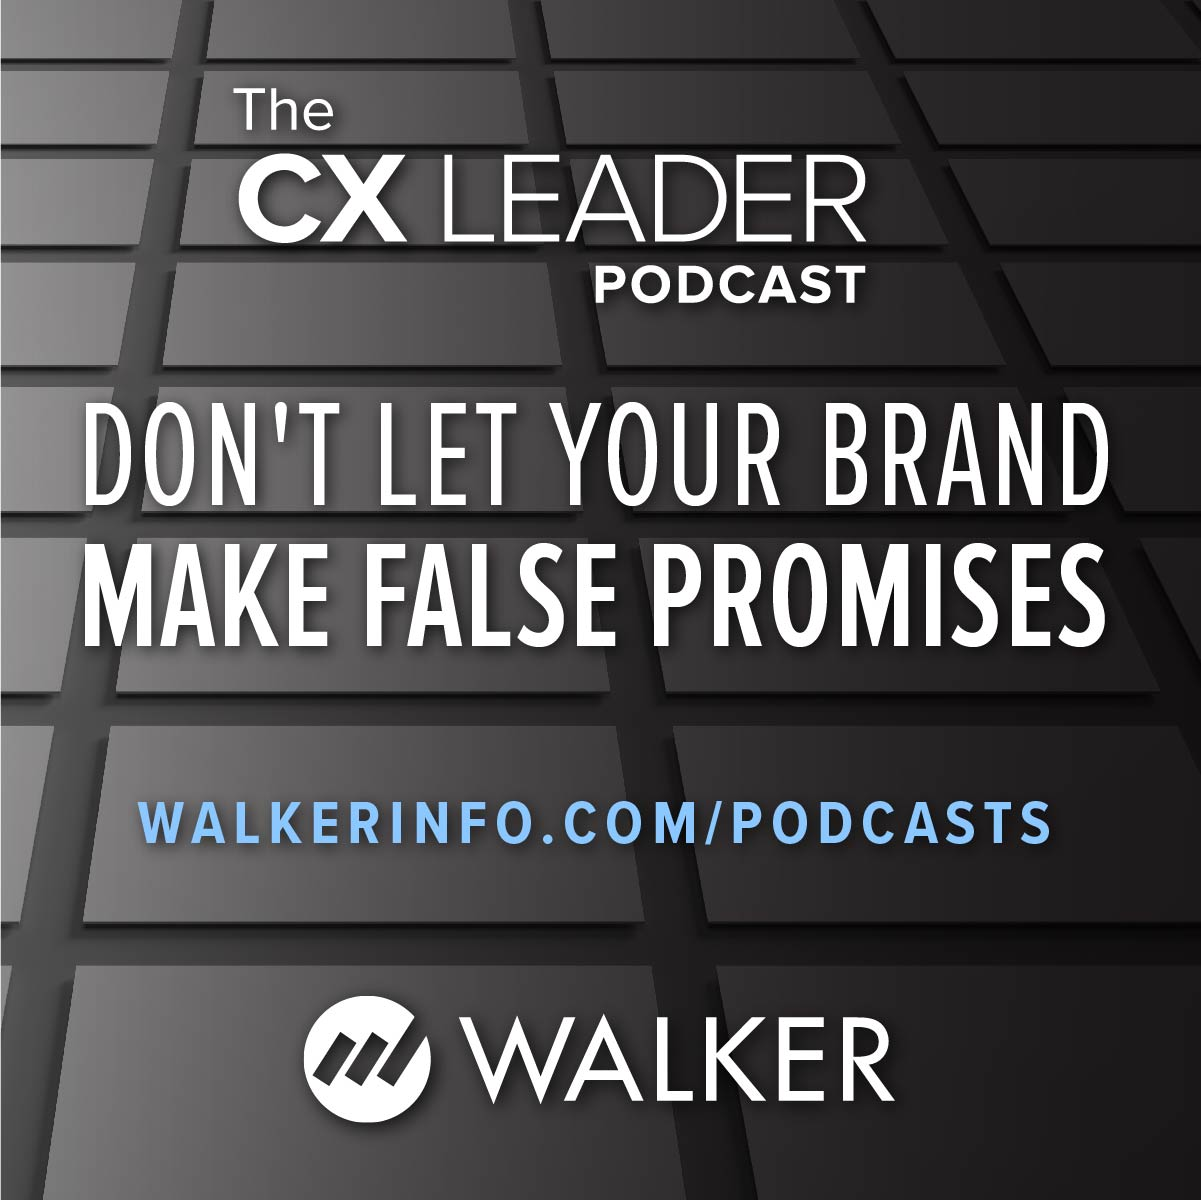 Don't let your brand make false promises